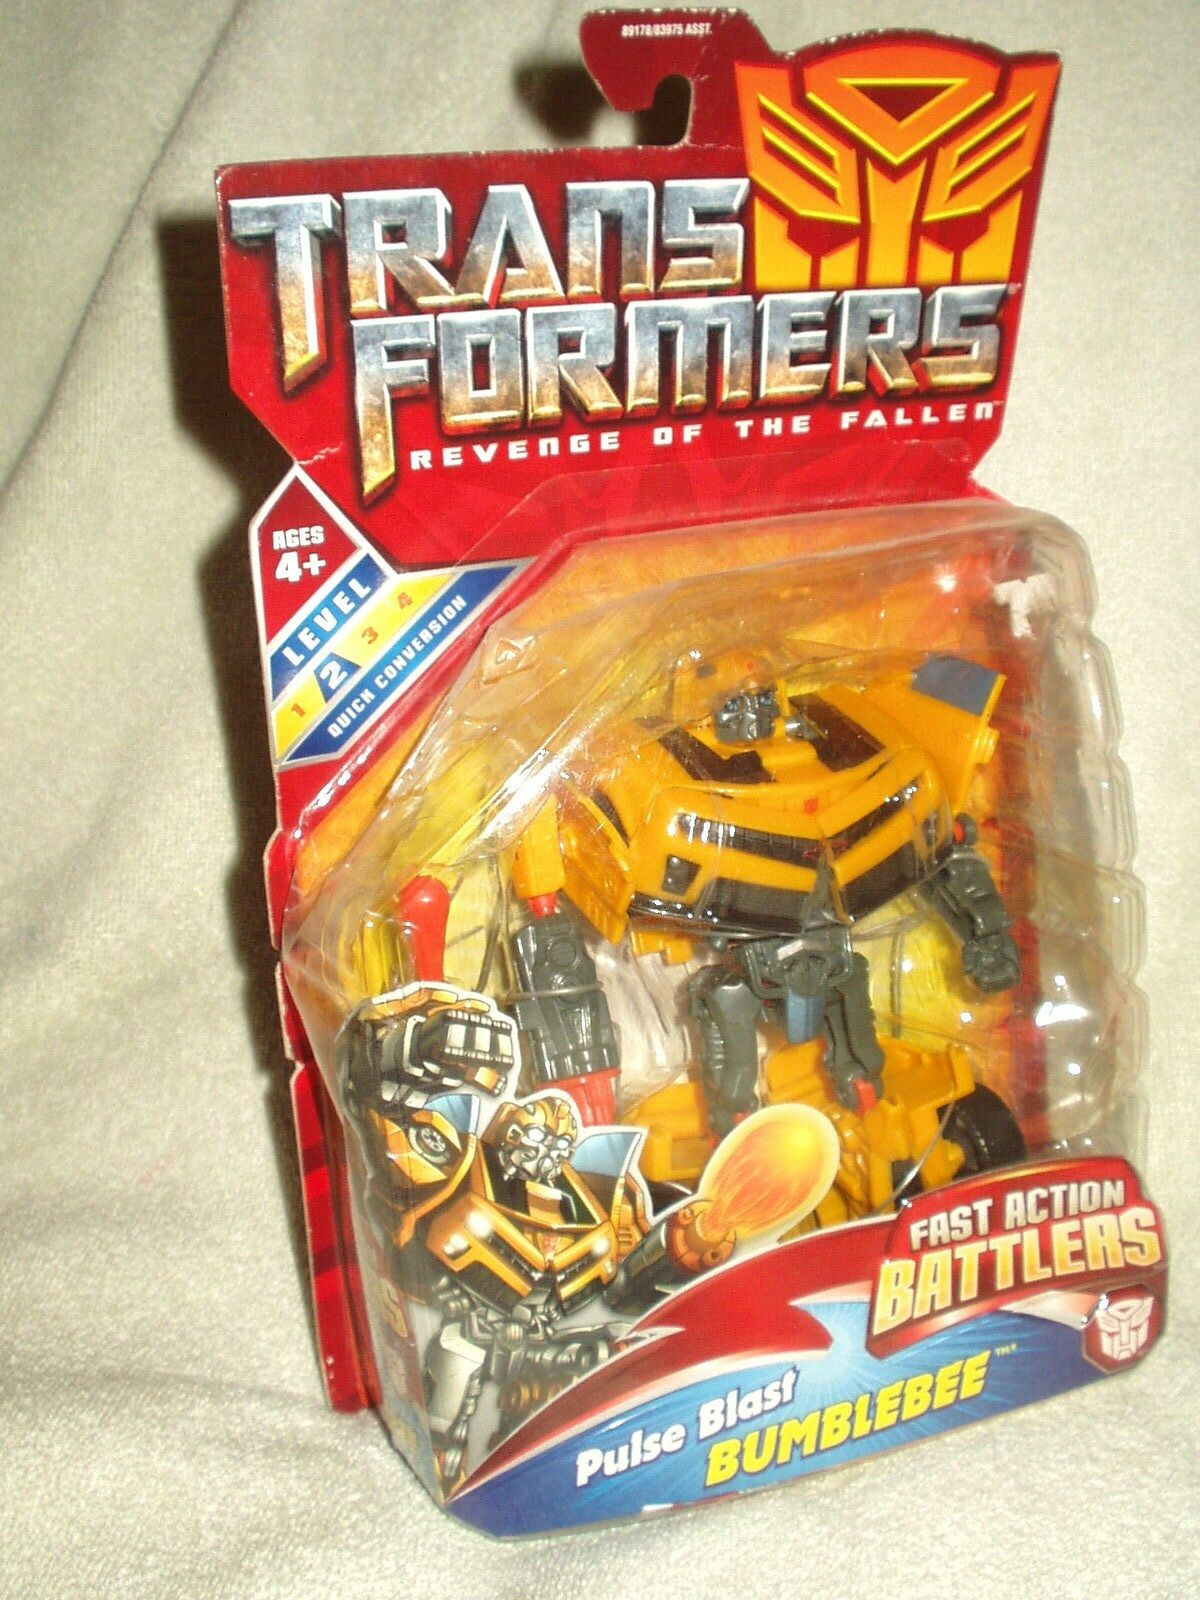 Transformers Action Figure redF Movie Fast Action Battlers Bumblebee 6-7 inch